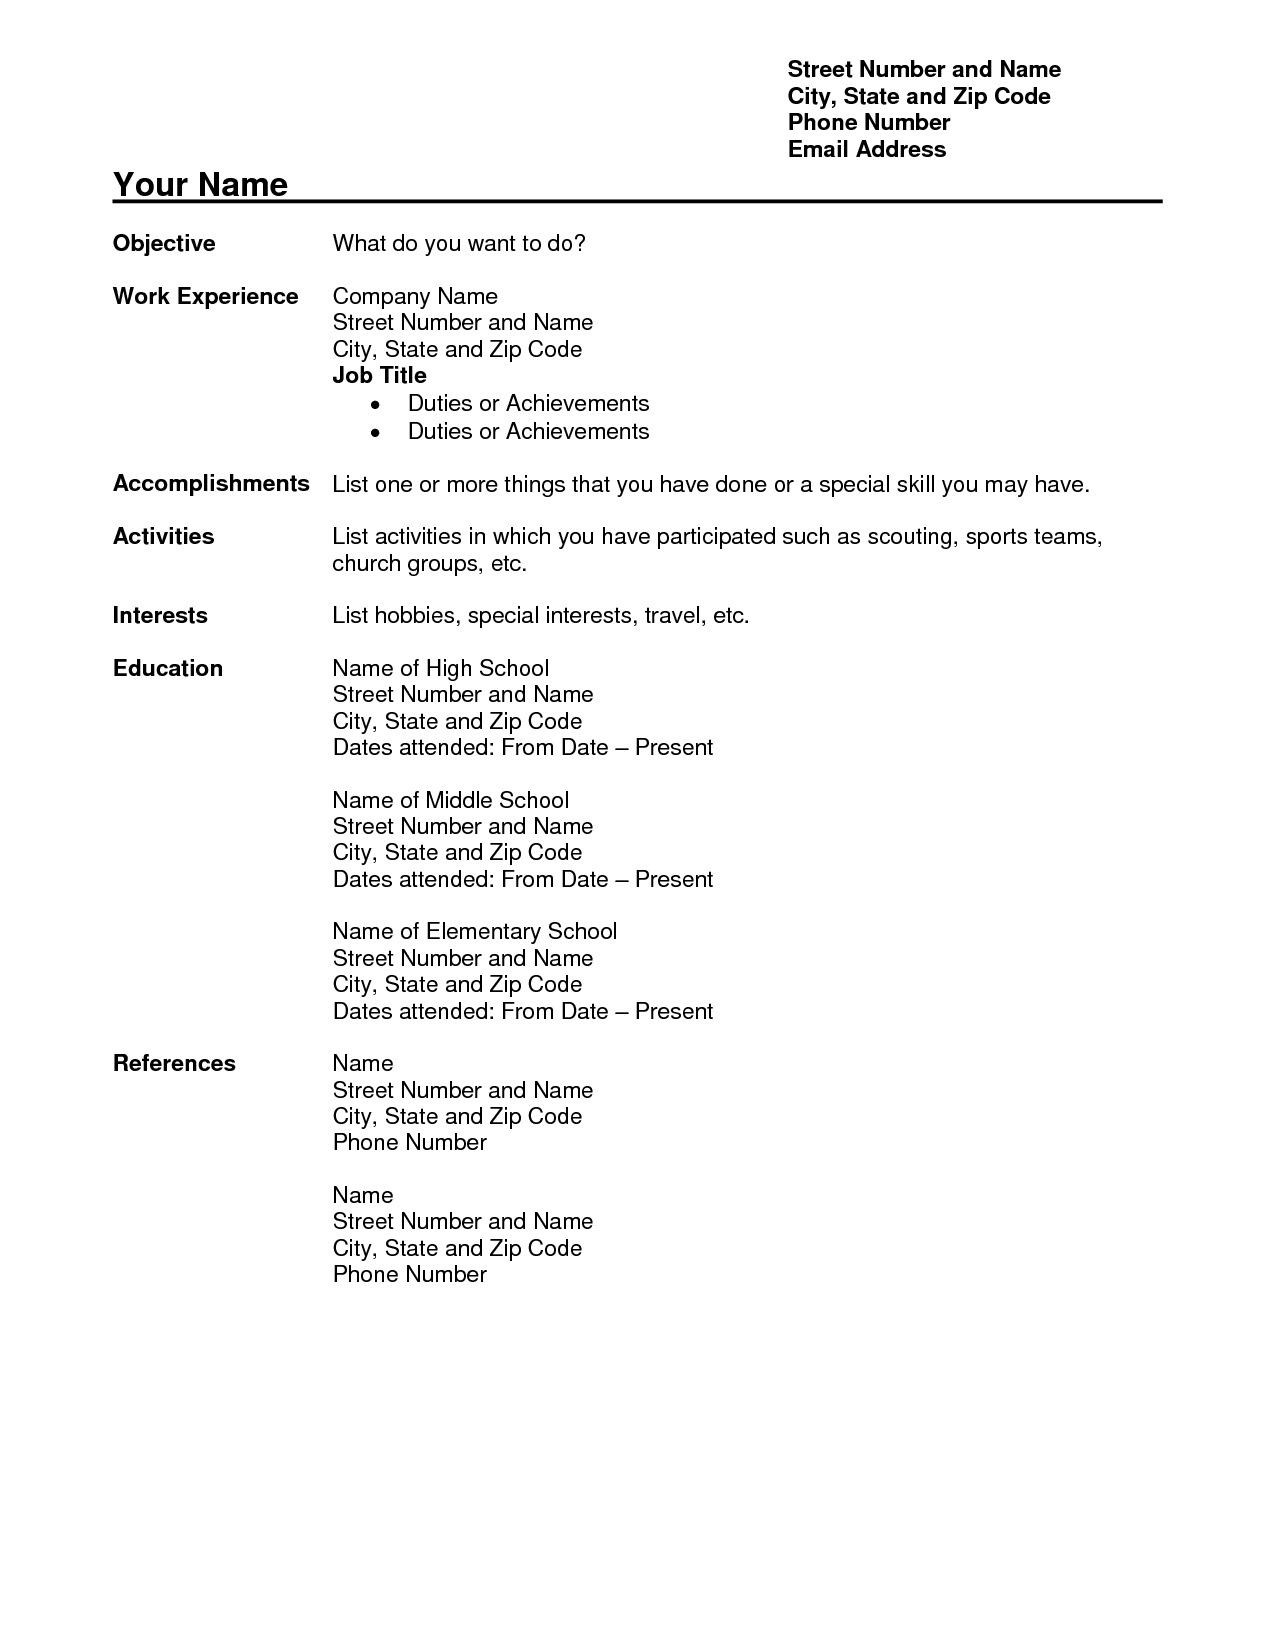 Free Teacher Resume Templates Download Free Teacher Resume Templates  Download, Free Teacher Resume Templates Microsoft  Free Resume Download Templates Microsoft Word